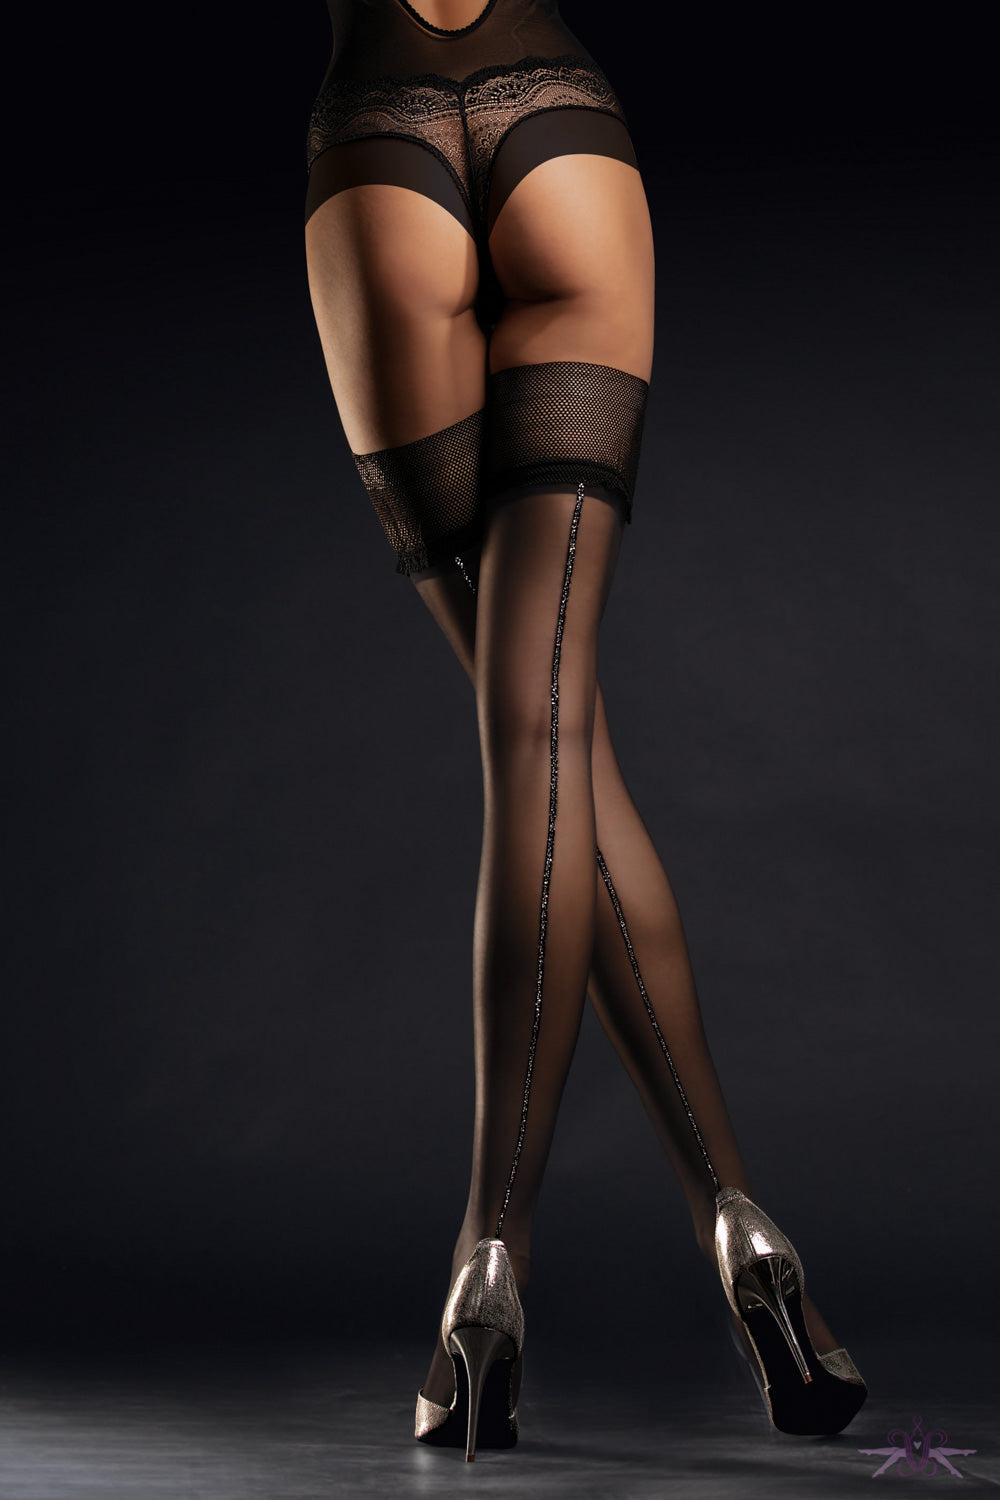 Fiore Allure Silver Seam Hold Ups - Mayfair Stockings